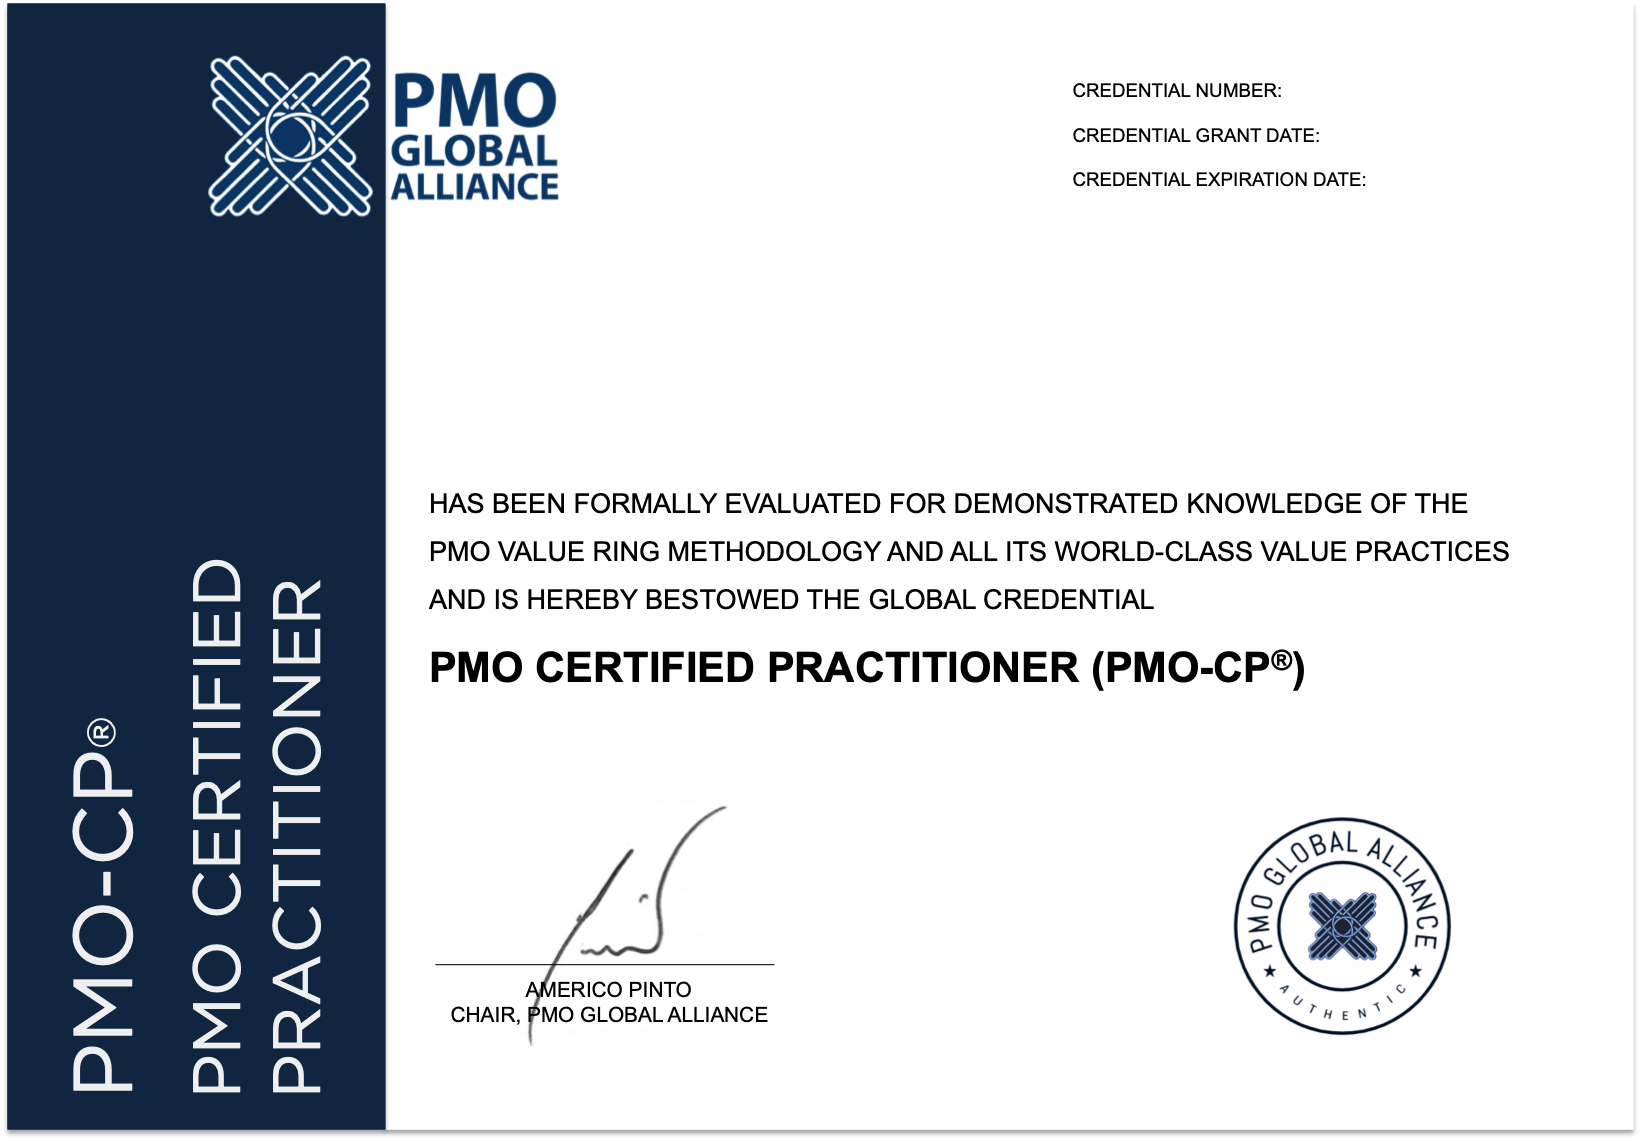 pmo practitioner cp certified september